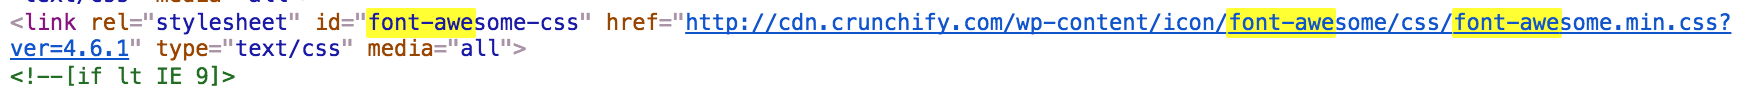 font-awesome-icons-loaded-successfully-on-crunchify